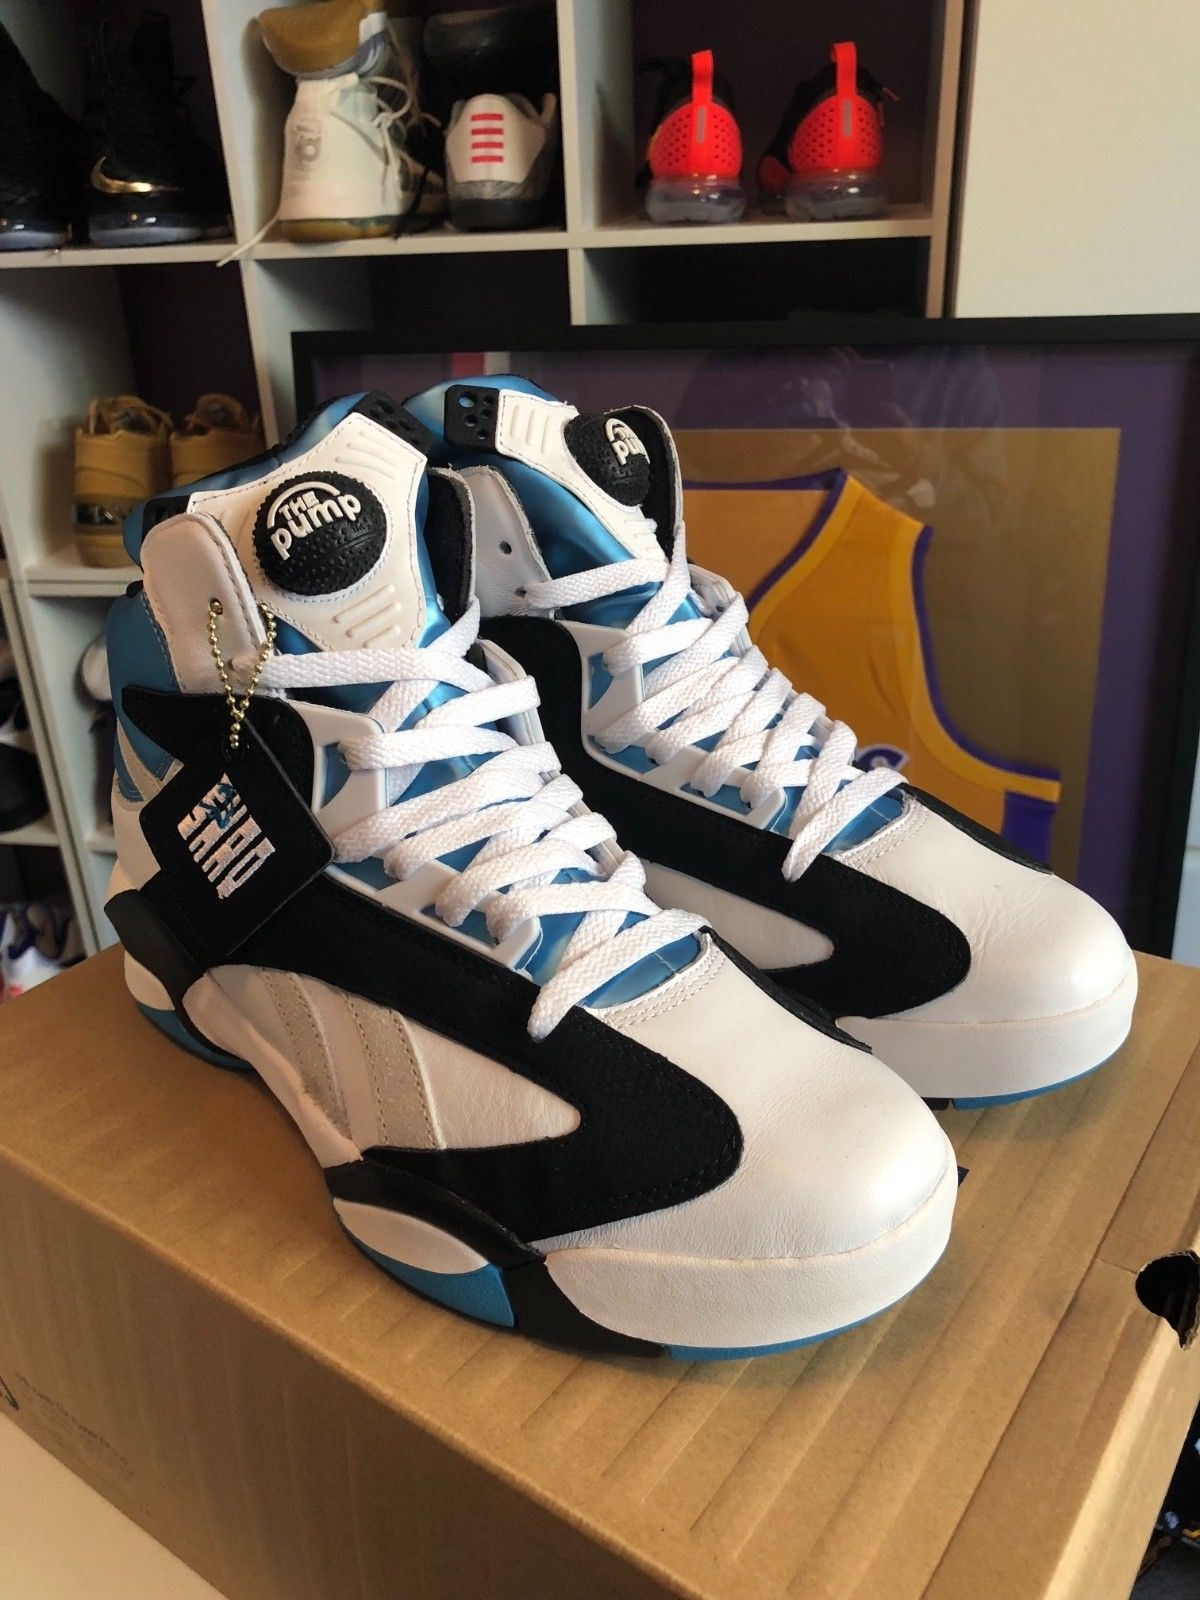 1f2bb55ff8d7 Details about 2013 Reebok Pump Shaq Attaq Retro OG Black Azure ...